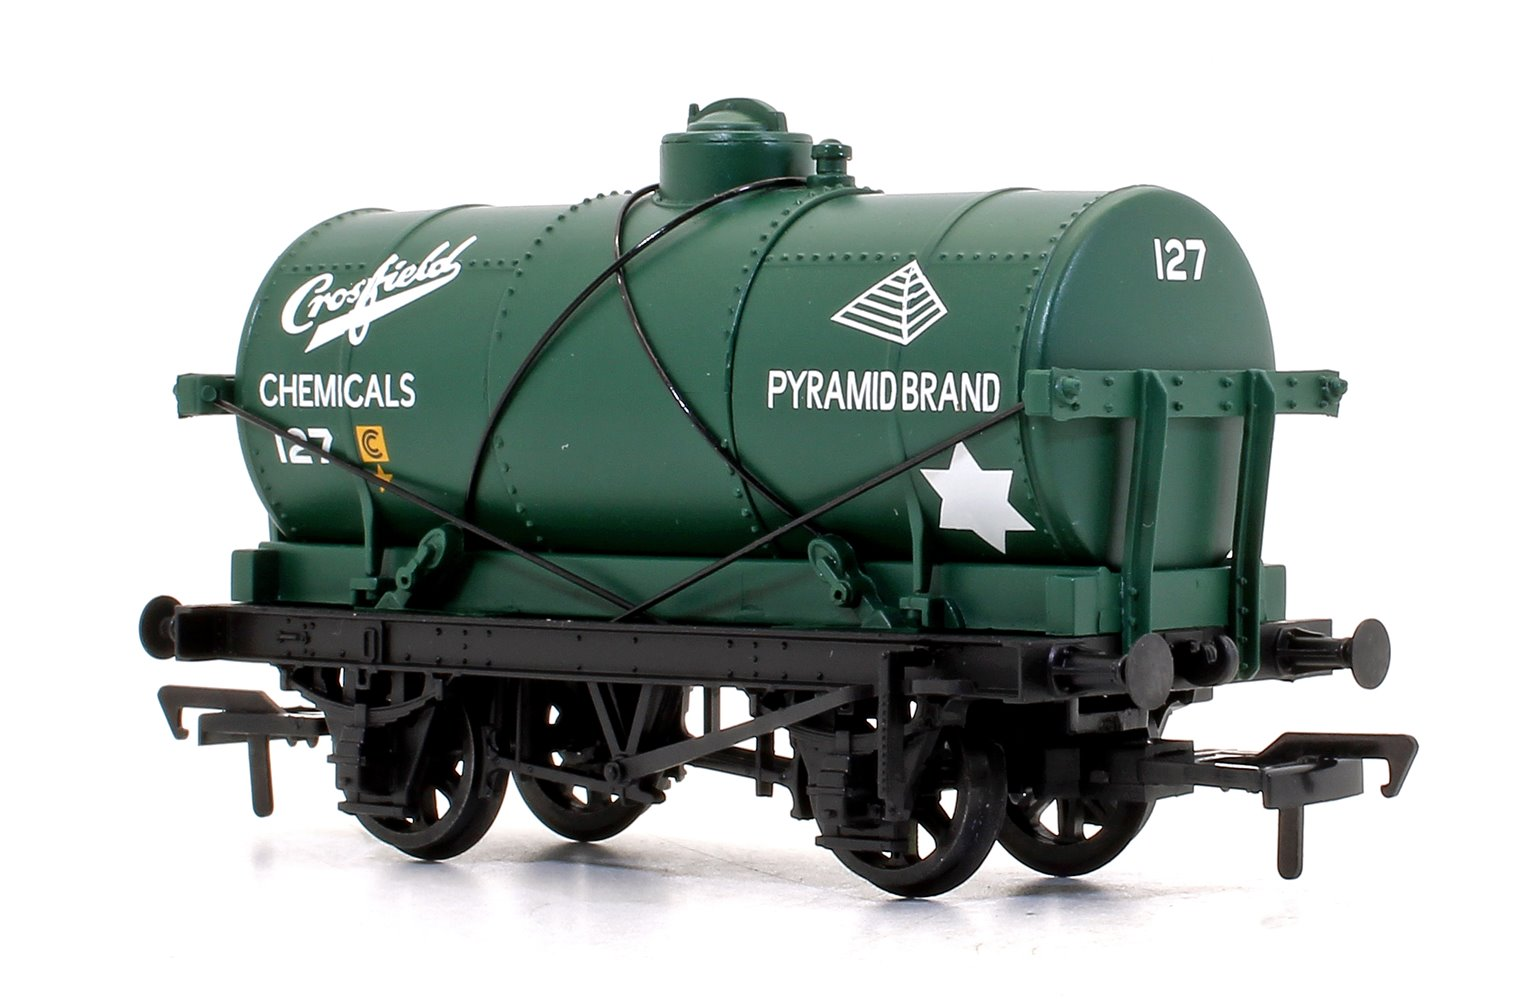 14 Ton Tank Wagon 'Crossfield Chemicals' Green